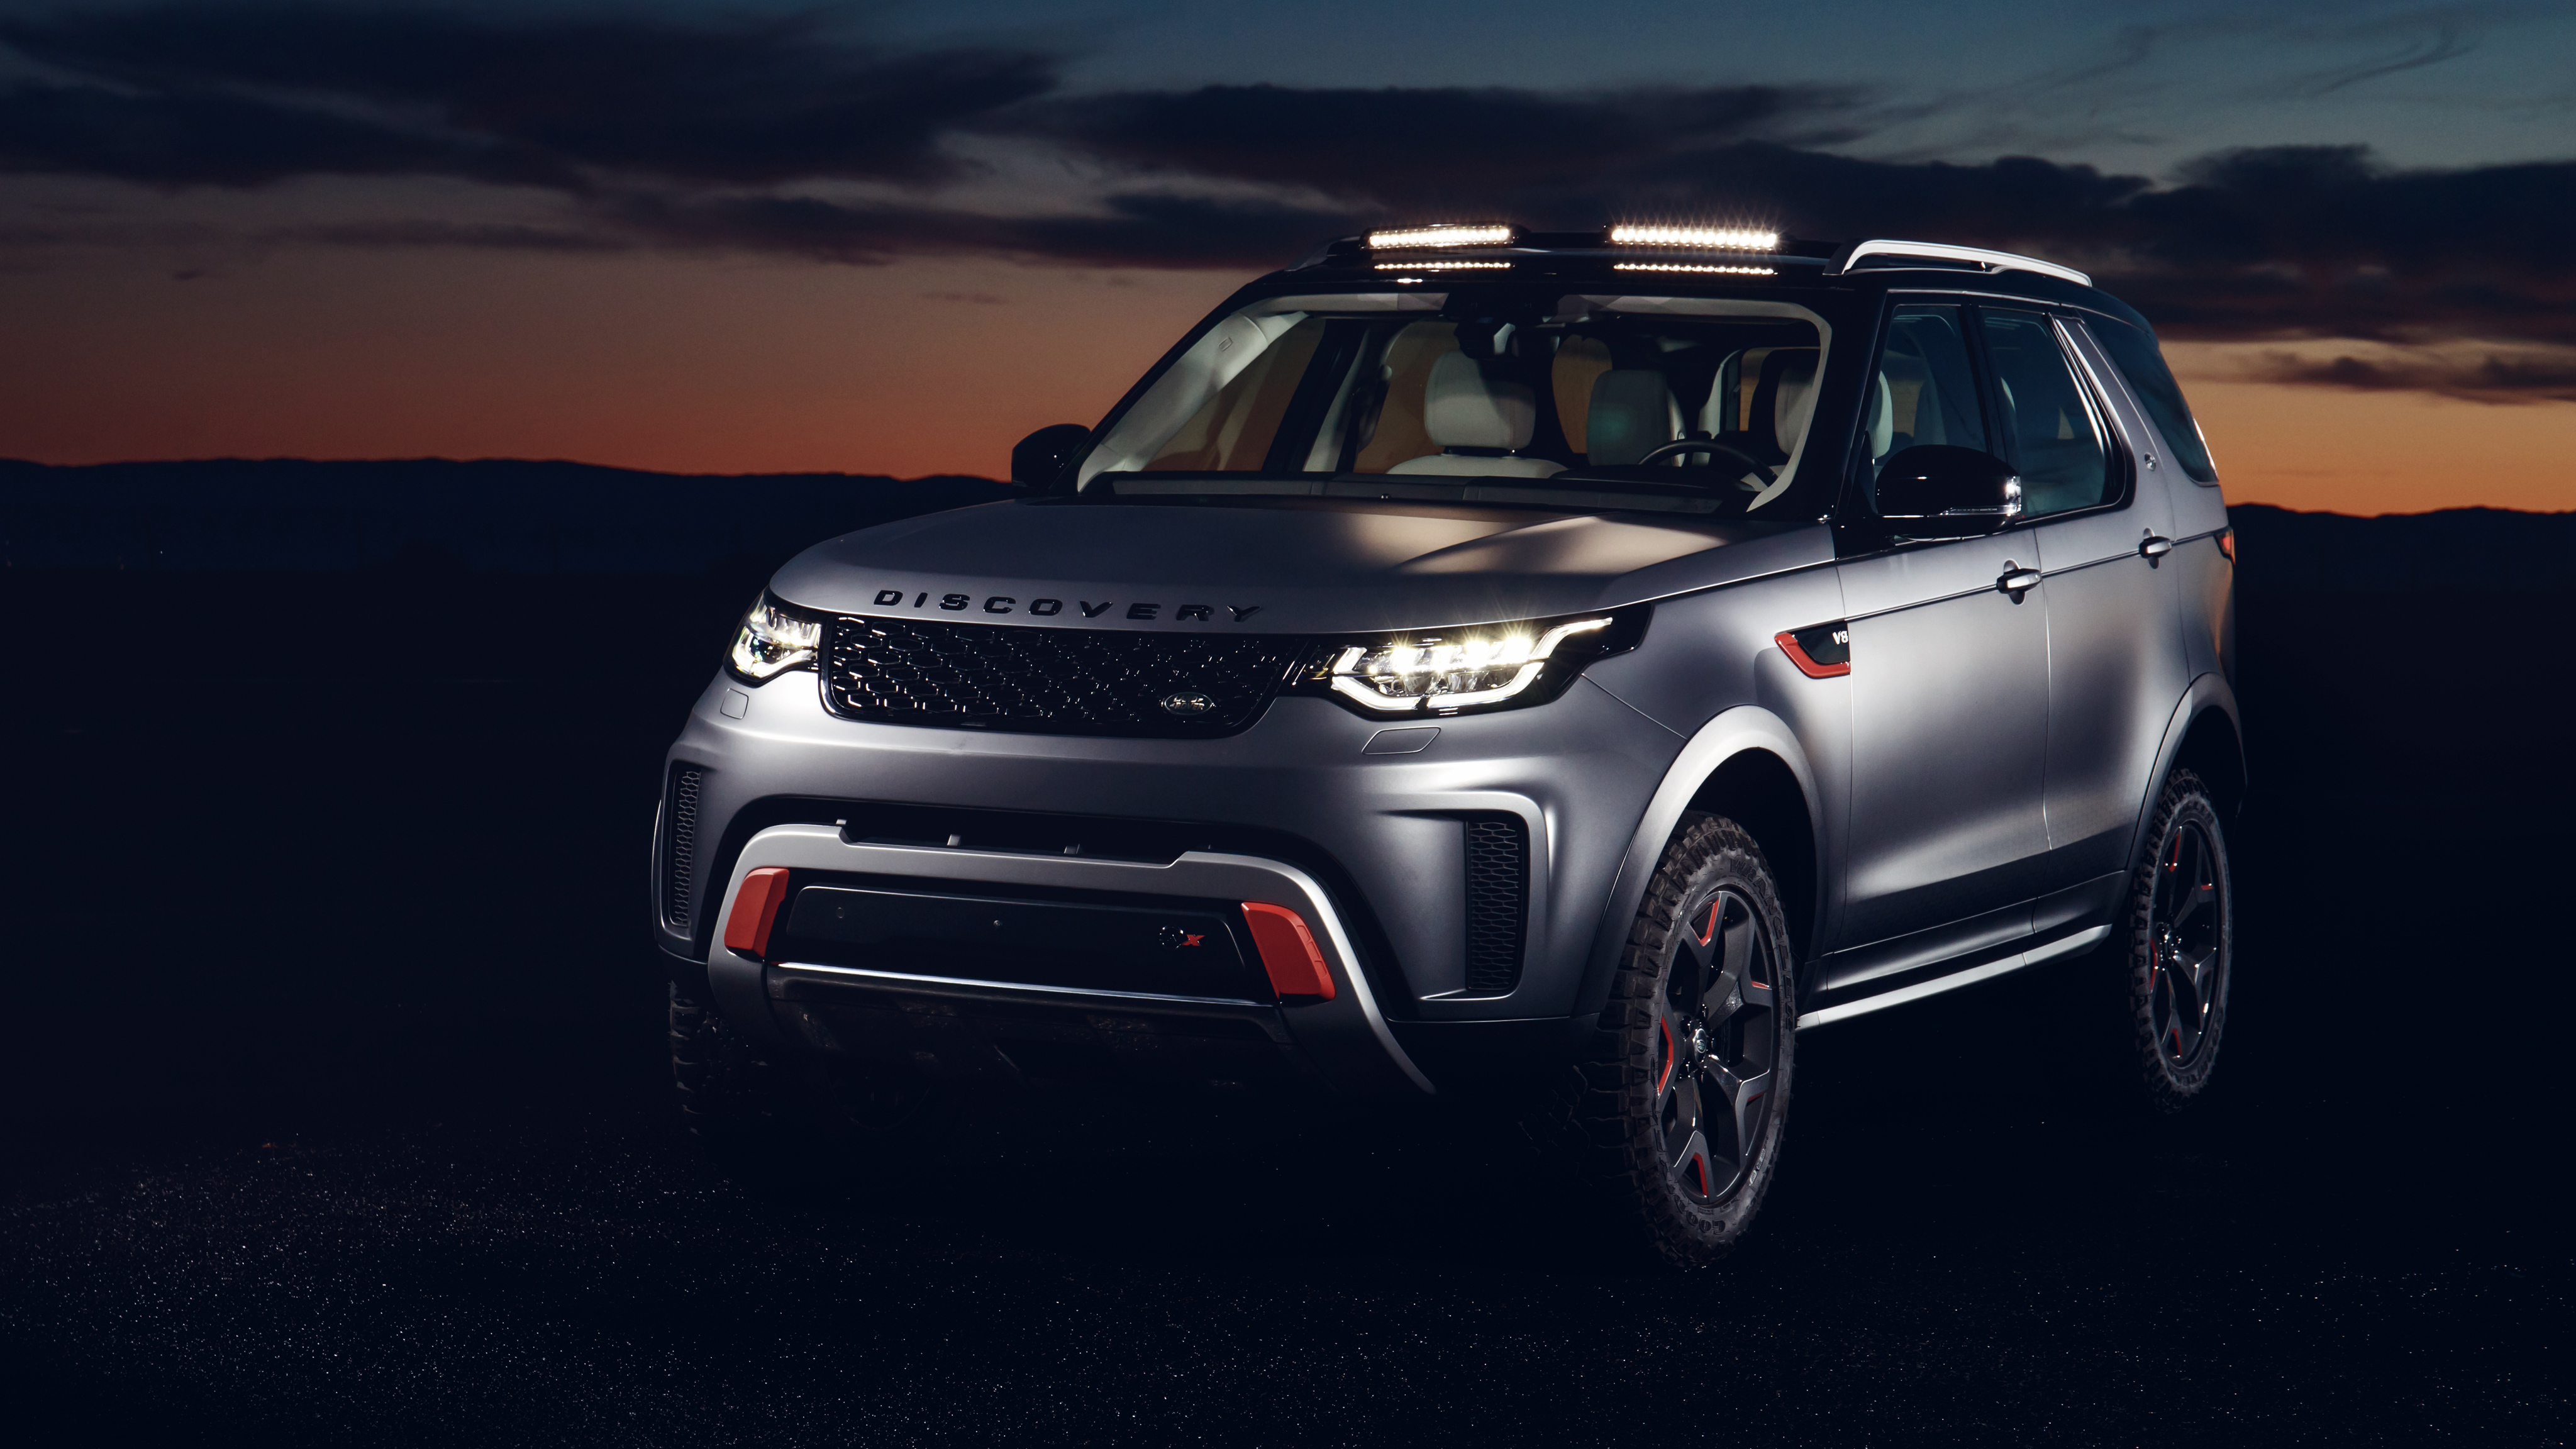 Iphone X Dynamic Wallpaper Download 2018 Land Rover Discovery Svx 4k Wallpaper Hd Car